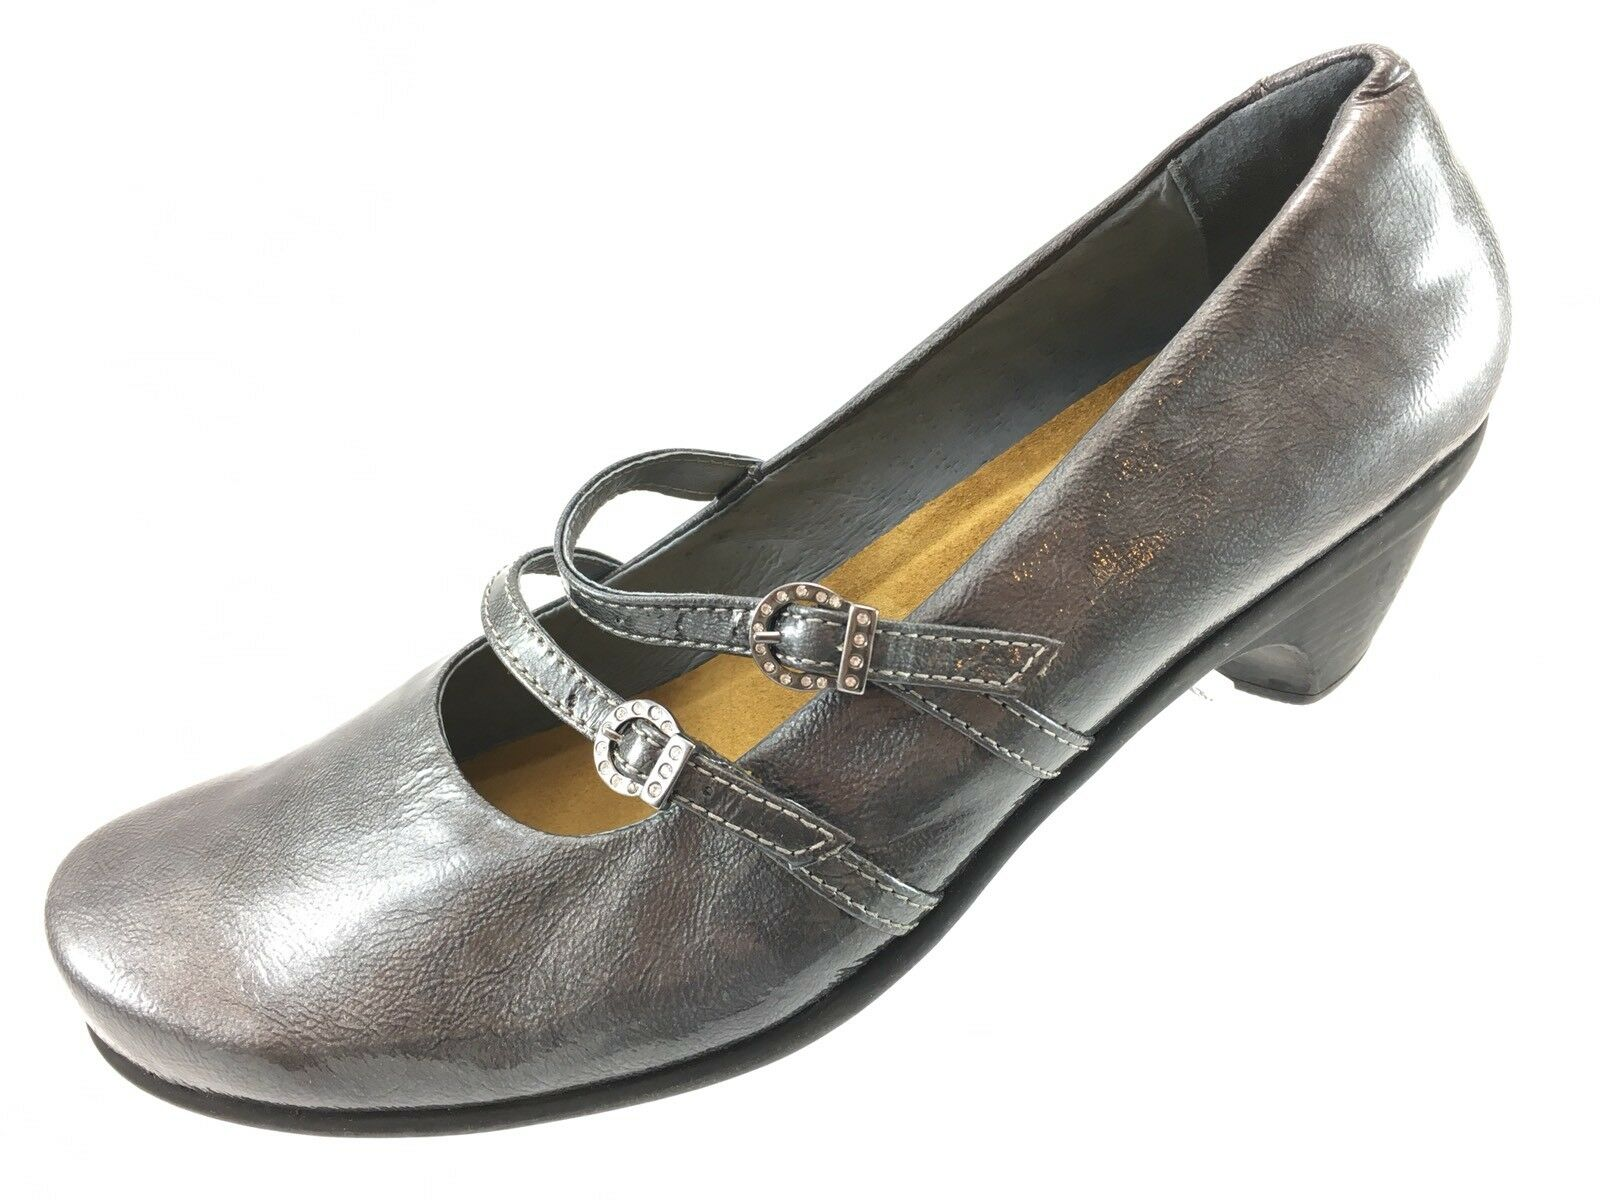 SH2 NAOT US 11 EUR Patent 42 Pewter Gray Textured Patent EUR Leather Mary Jane Block Heel 9742ab